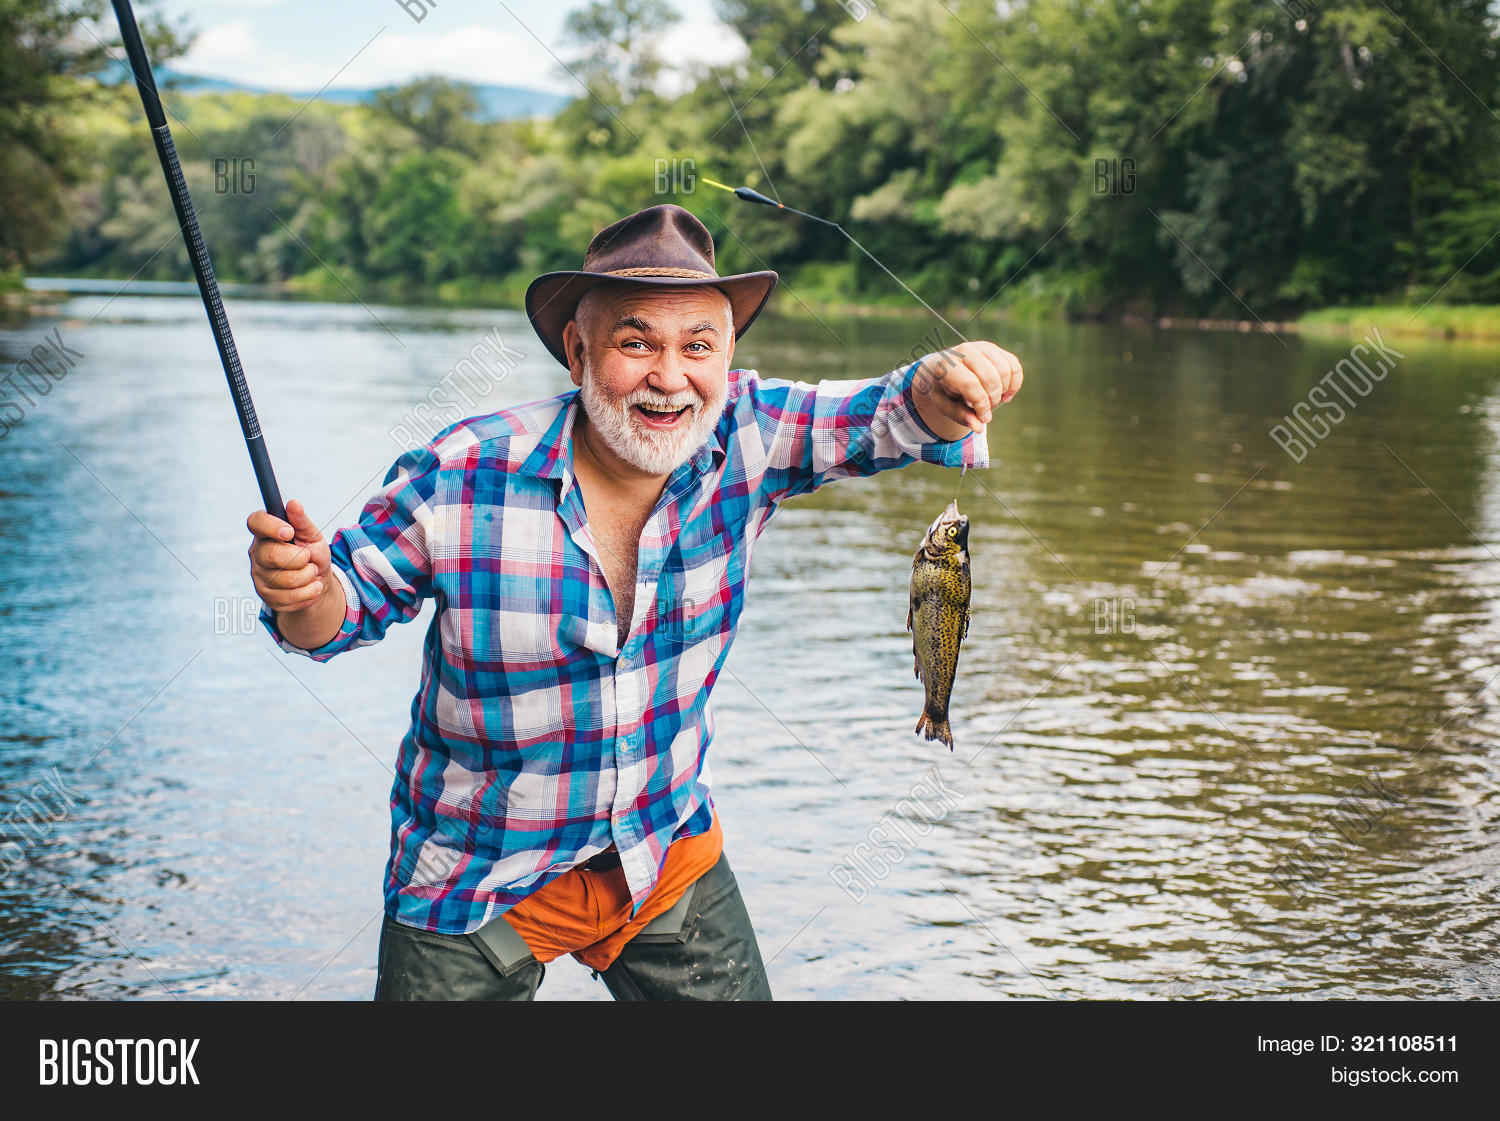 activity,american,angler,angling,background,beard,bearded,catch,catching,equipment,fish,fish-rod,fisher,fisherman,fishermen,fishery,fishhook,fishing,fishman,float,fly,flyfishing,freshwater,handsome,hobby,leisure,male,man,men,nature,net,outdoor,person,pull,recreation,river,rod,season,shiny,spinning,splash,sport,stream,success,tackle,trout,vacation,weekend,wild,wildlife